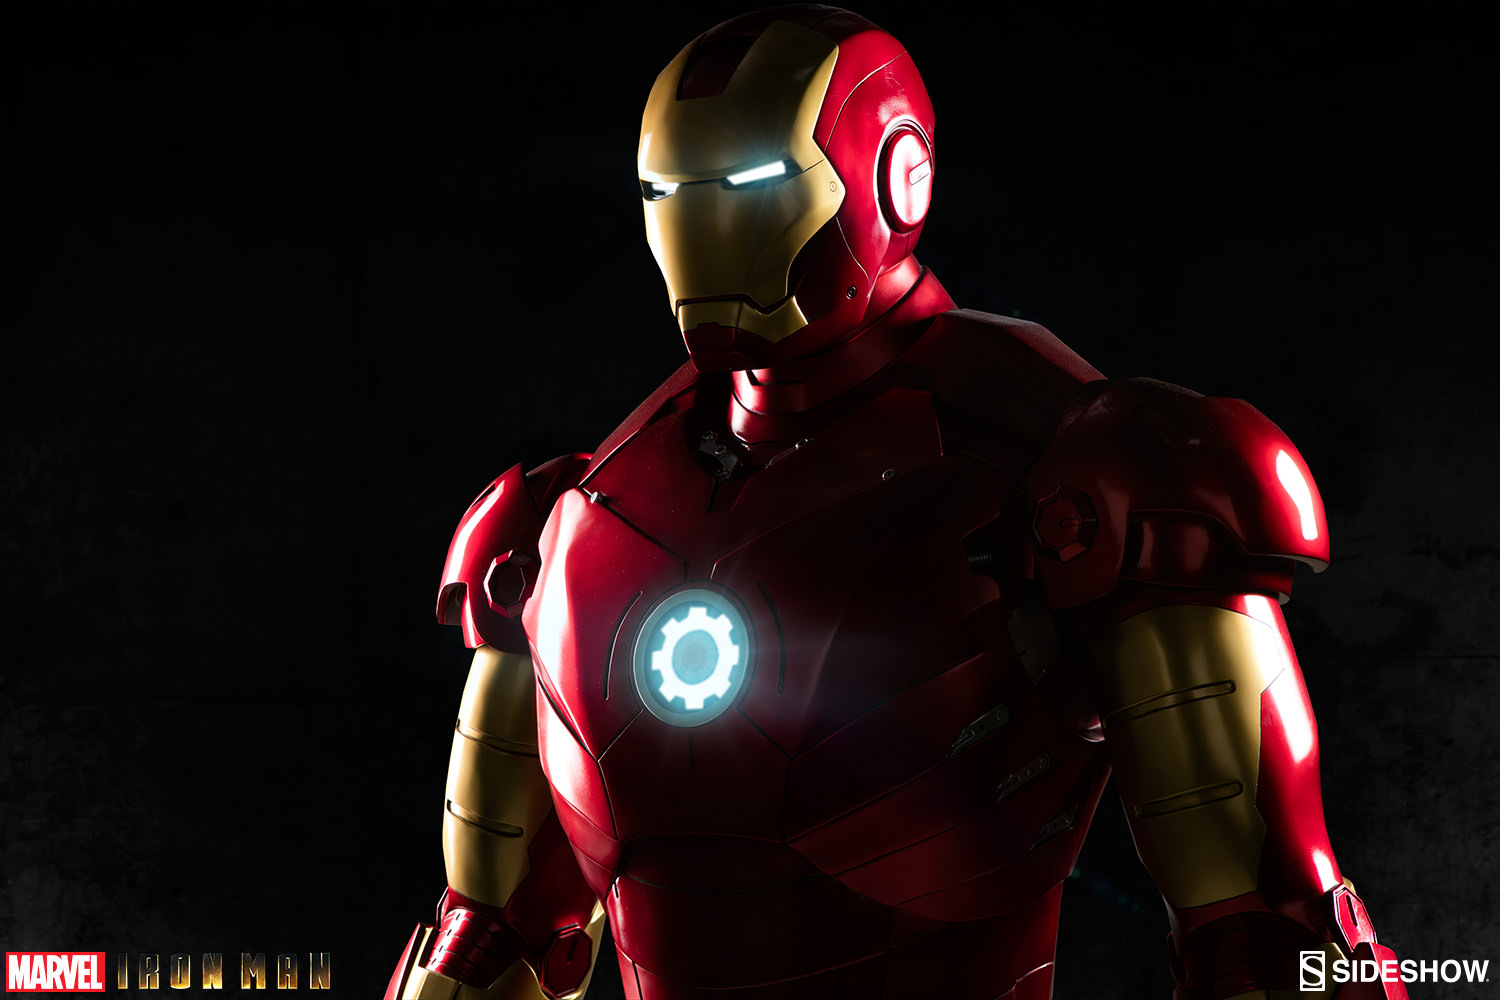 Marvel Iron Man Mark III Life Size Figure by Sideshow Collec         Iron Man Mark III Life Size Figure